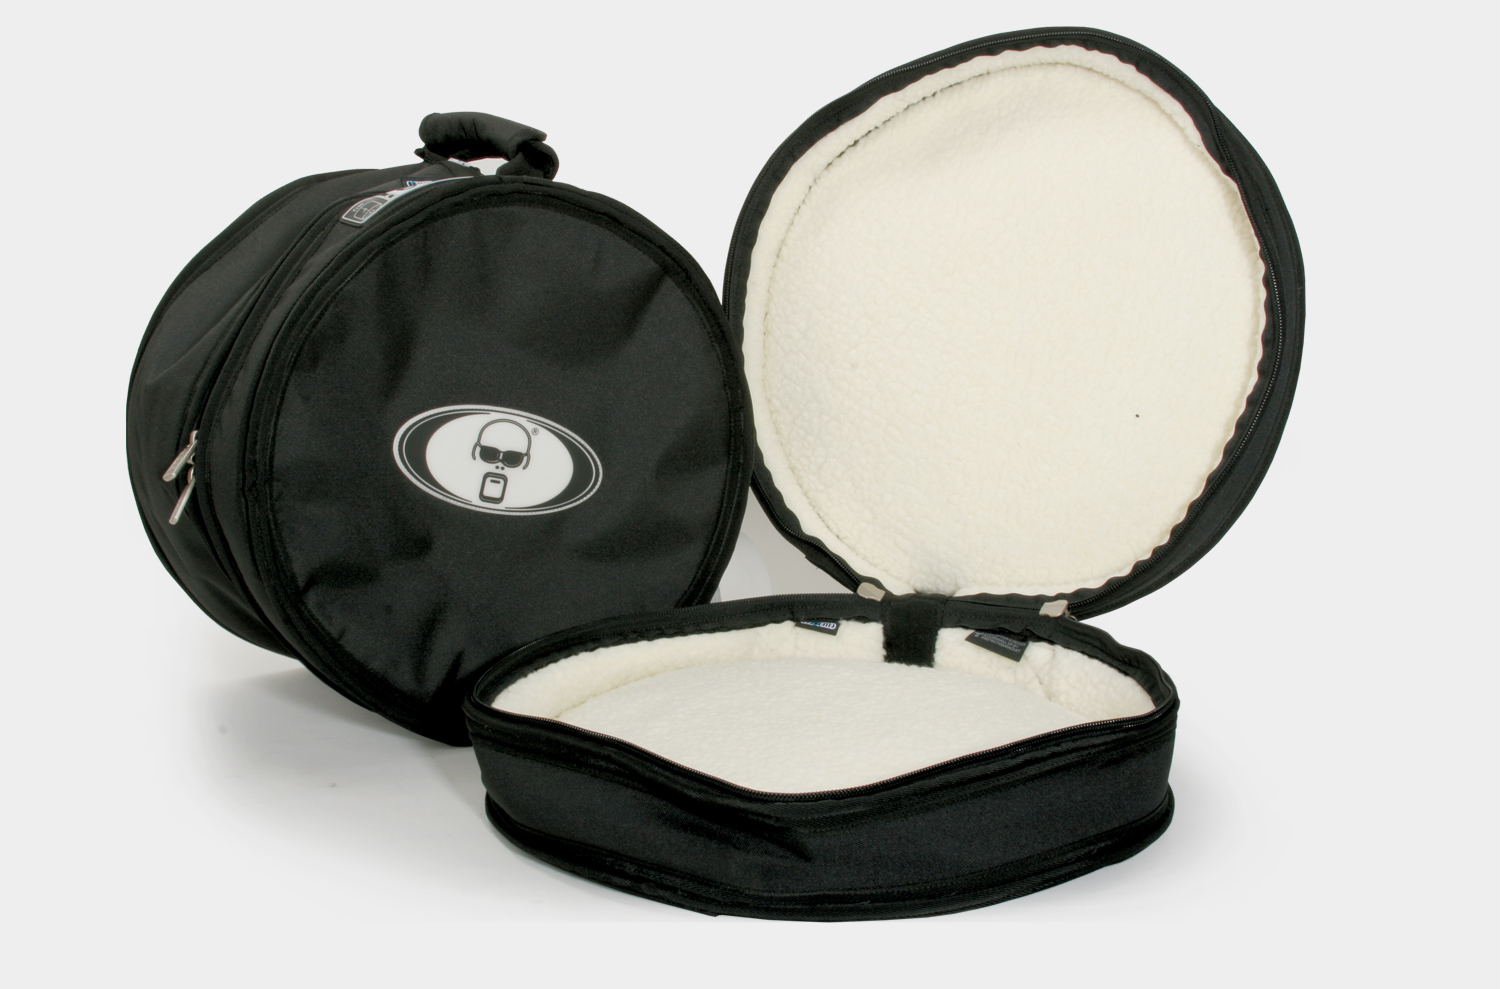 Protection Racket Bass Drum Bag 1620